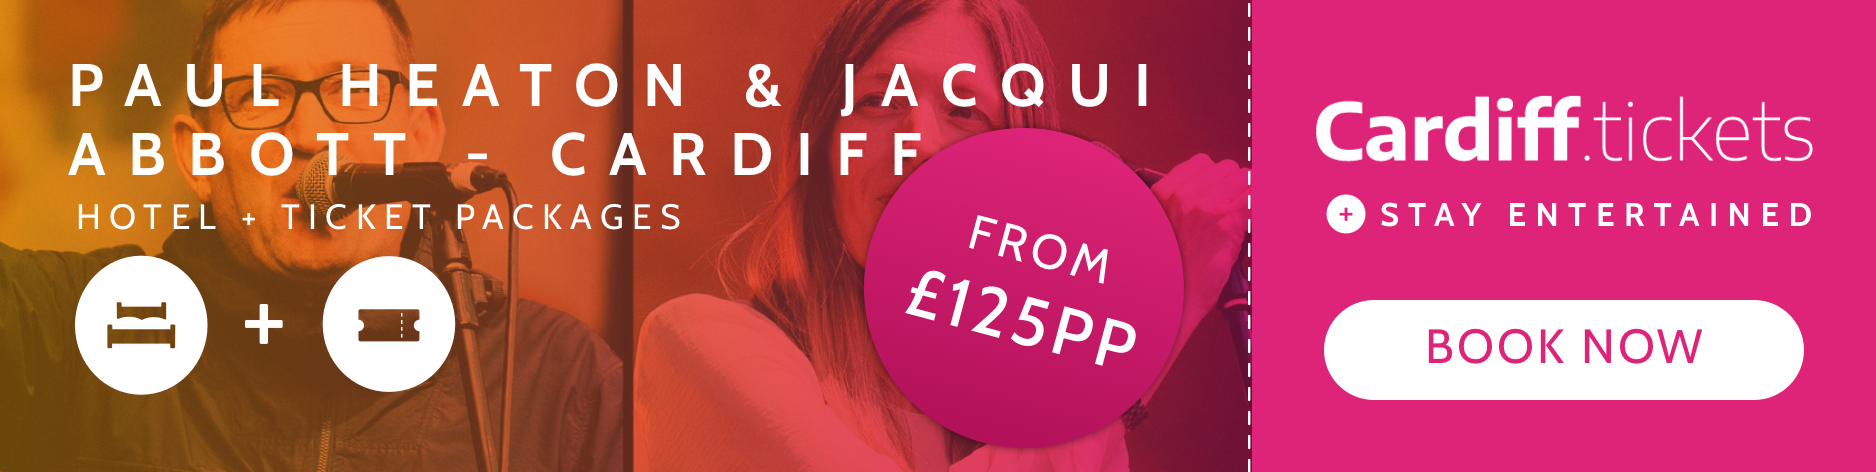 Paul Heaton & Jacqui Abbott- Cardiff tickets and hotel package